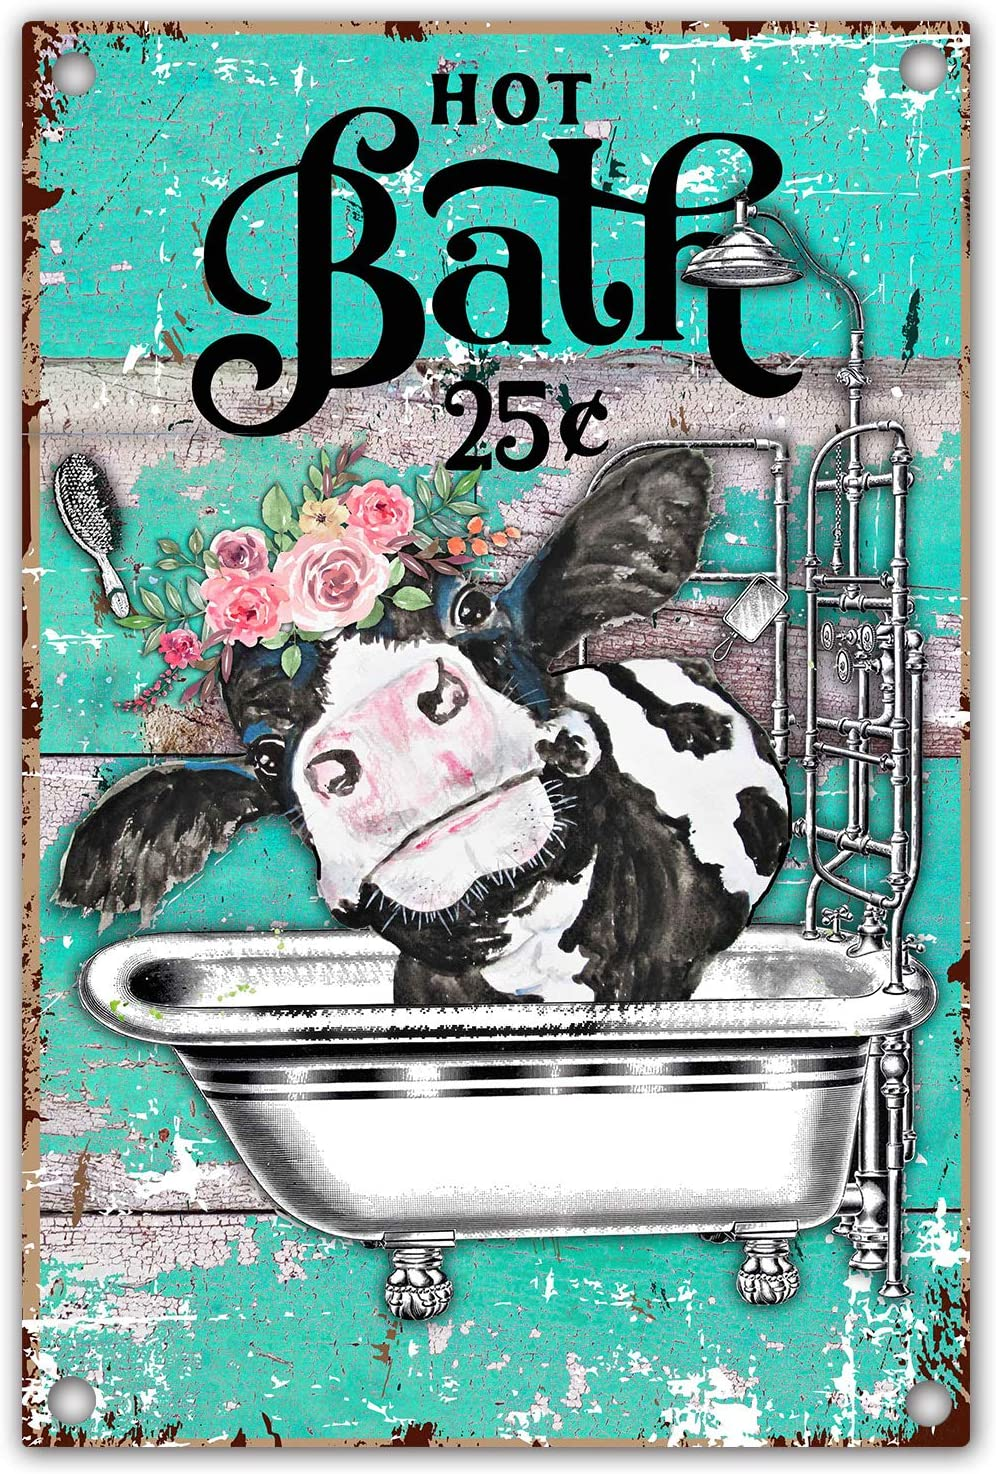 vizuzi Funny Bathroom Quote Metal Tin Sign Wall Decor, Vintage Cow Tin Sign for Office/Home/Classroom Bathroom Decor Gifts - Best Farmhouse Decor Gift Ideas for Friends